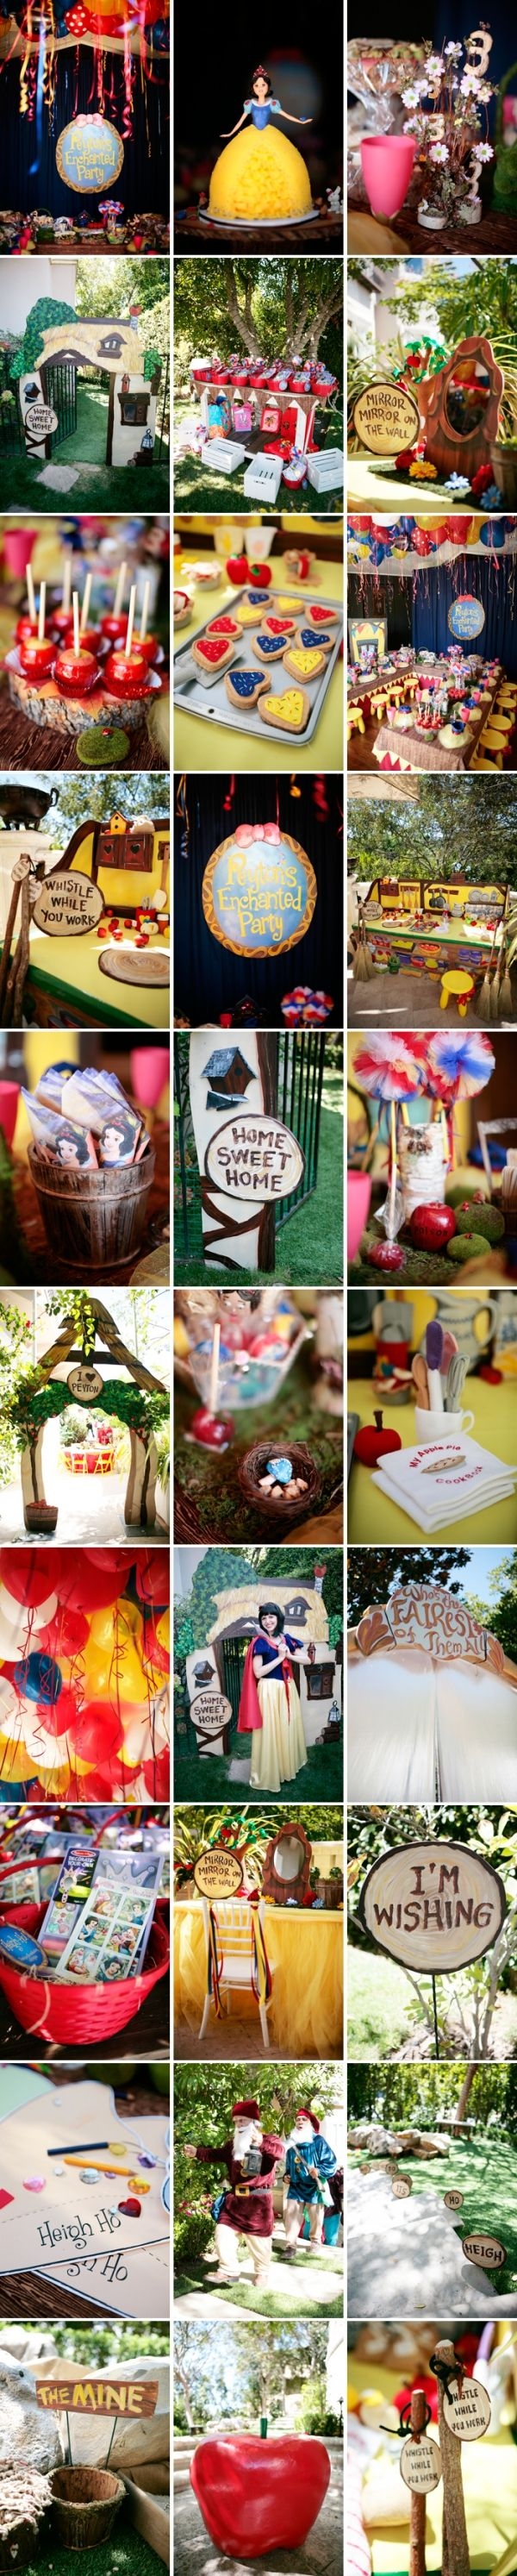 Enchanted Birthday Party » Tammy Horton Blog